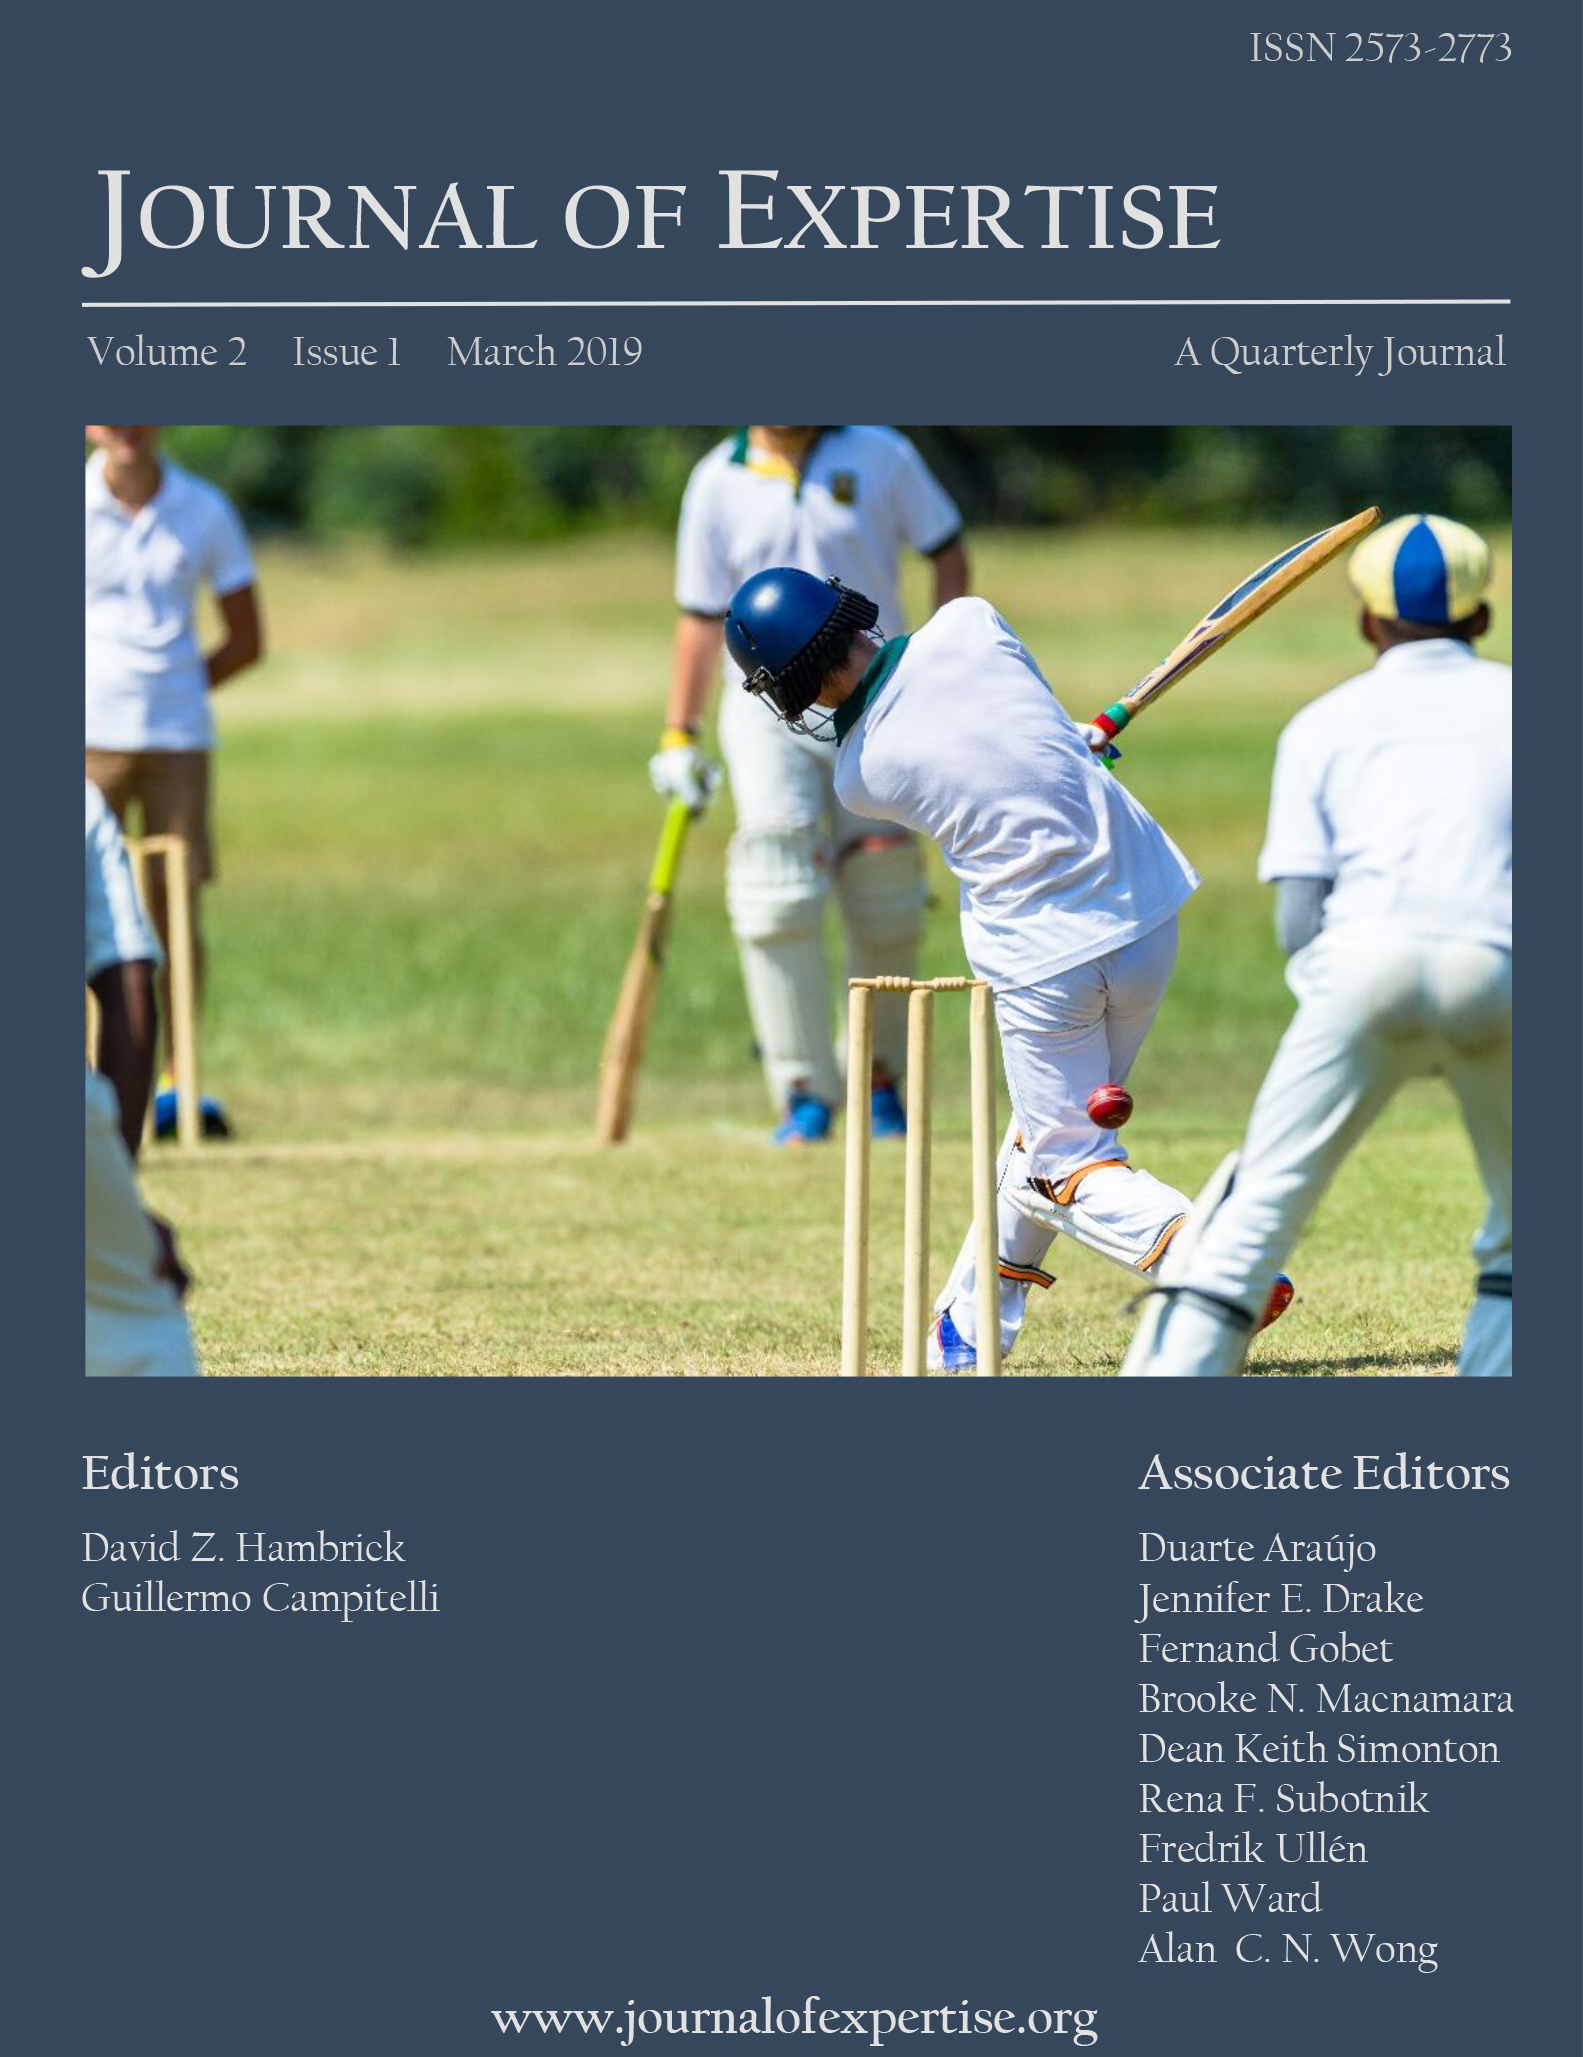 Journal of Expertise Volume 2 Issue 1